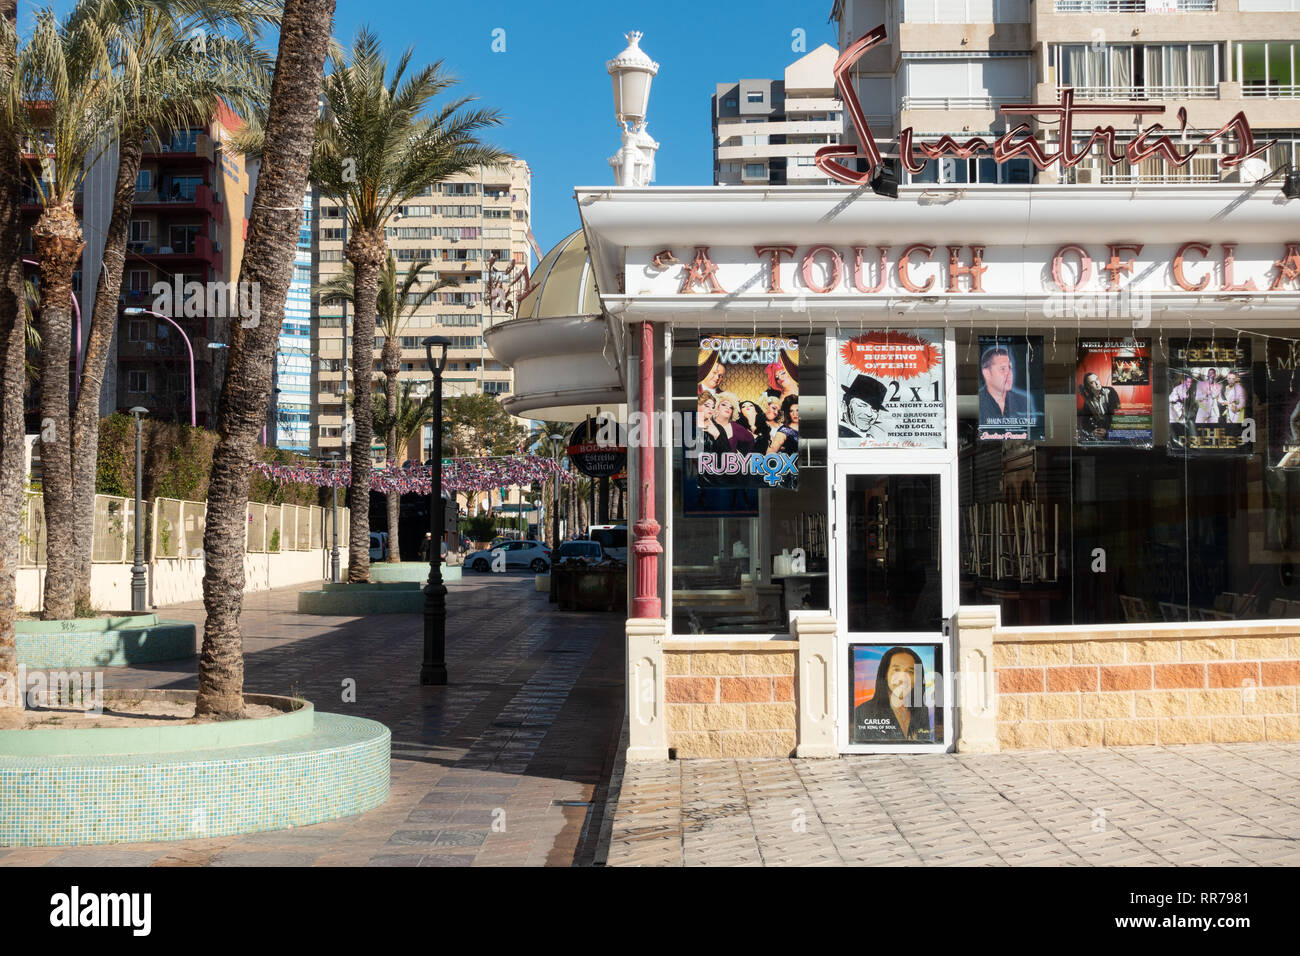 Benidorm, Costa Blanca, Spain, 25th February 2019. Two staff members at the Beachcomber pub in Benidorm New Town on the British square. Two British tourists have been arrested in relation to the alleged attack. Seen here is Sinatras, aA Touch Of Class Bar which is not connected to the reported incident. Credit: Mick Flynn/Alamy Live News Stock Photo